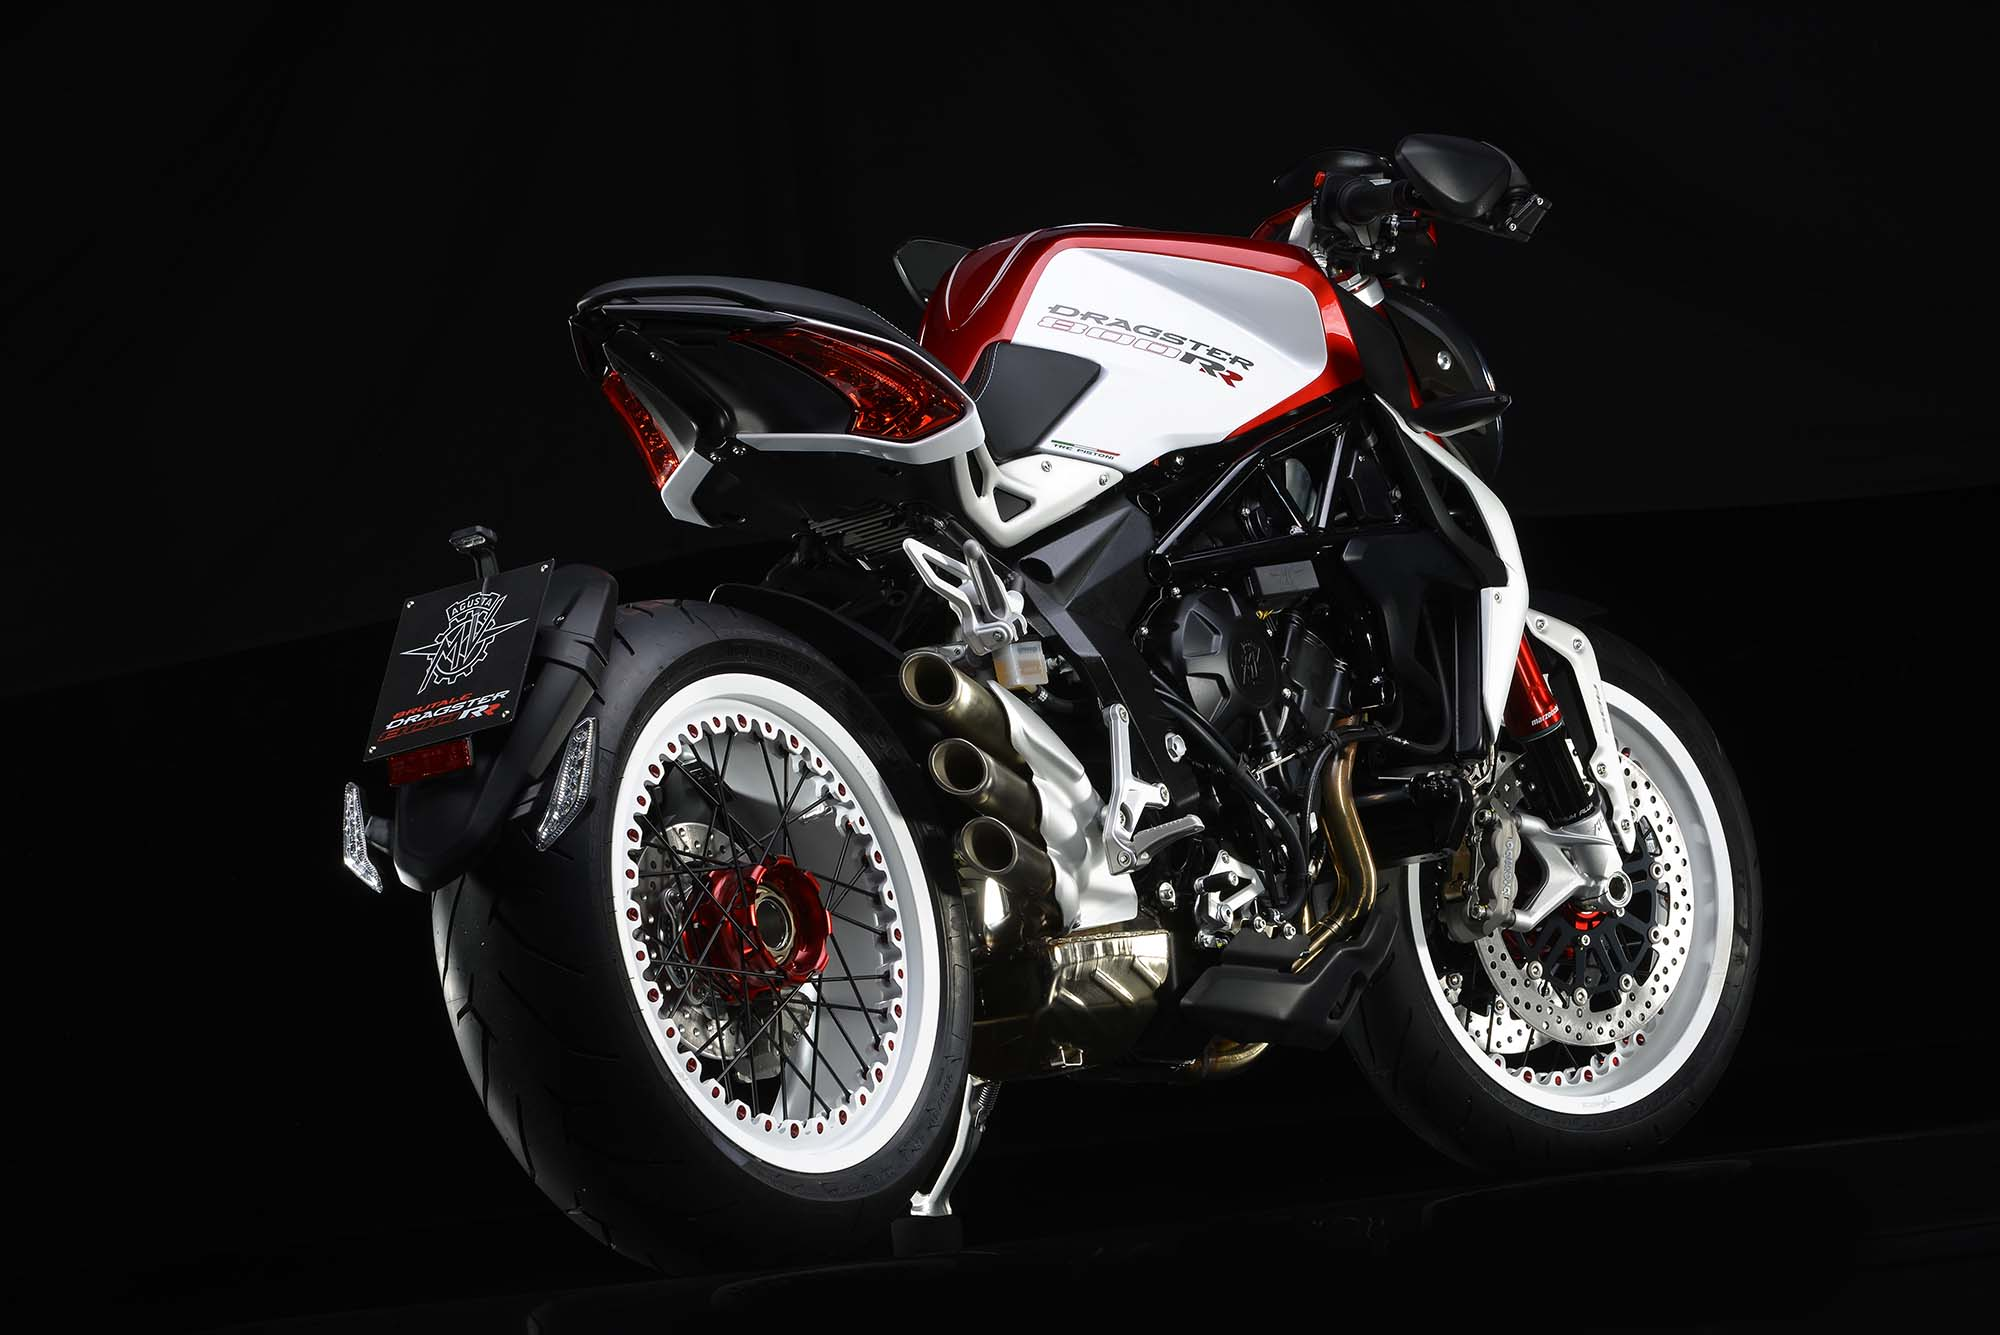 Officially Official: MV Agusta Brutale Dragster 800 RR